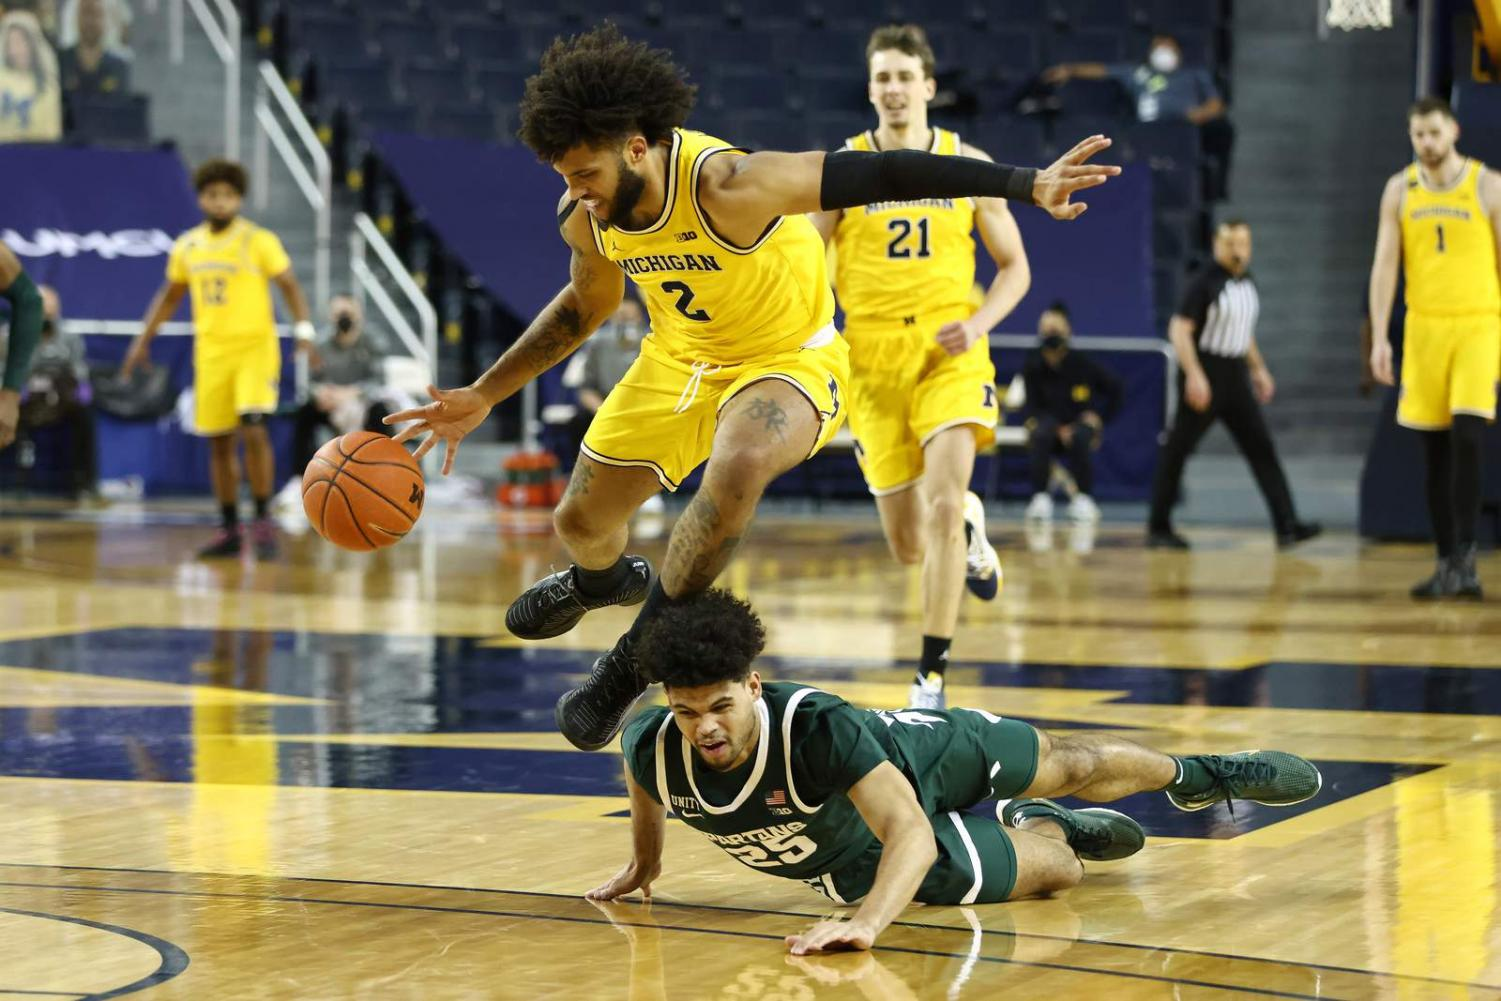 Isaiah Livers of the Michigan Wolverines pursues a loose ball against Malik Hall of the Michigan State Spartans.